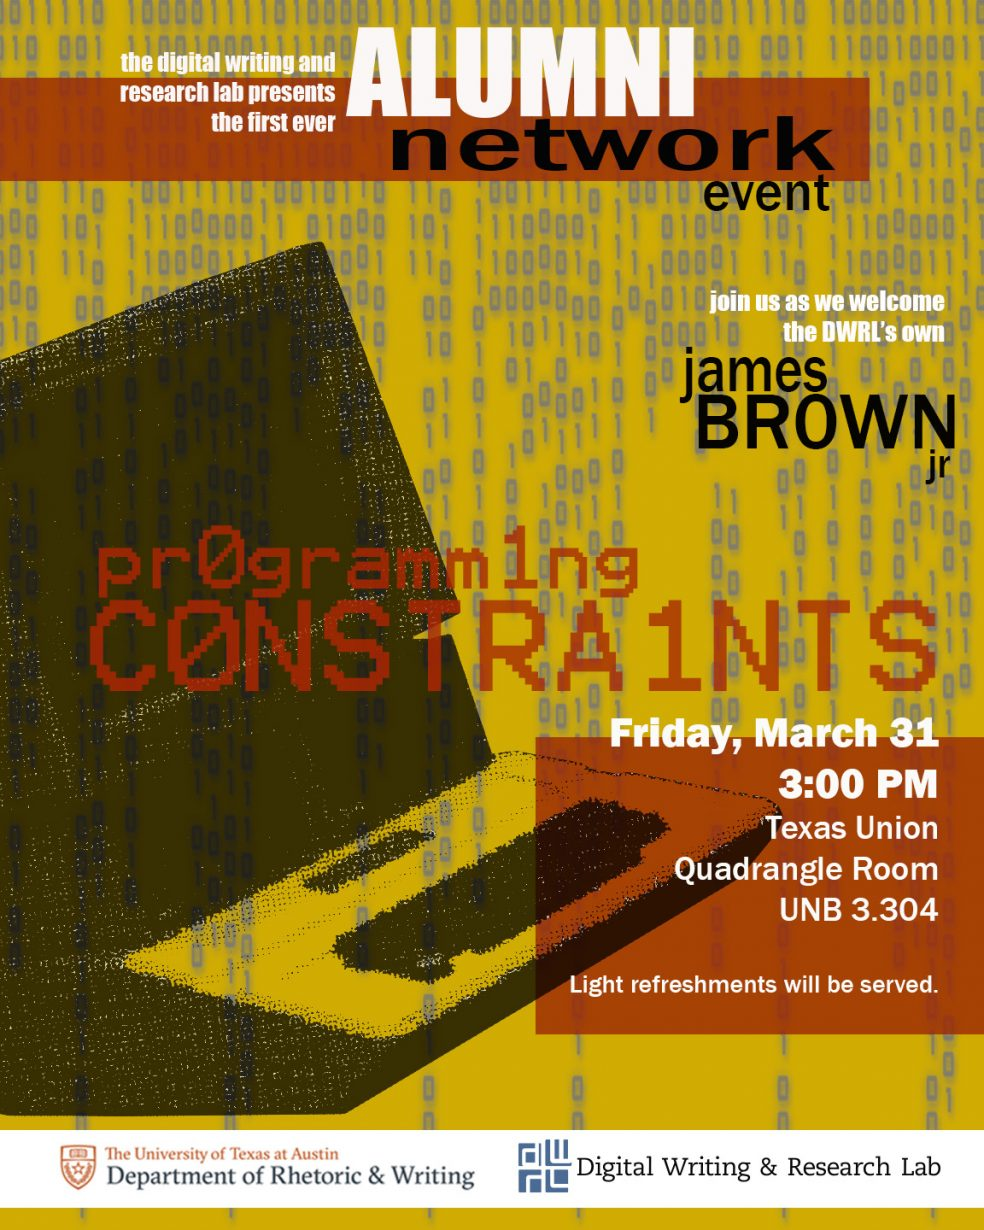 The Digital Writing and Research Lab presents the first ever Alumni Network Event / join us as we welcome the DWRL's own James Brown Jr. / Programming Constraints / Friday, March 31, 3:00 p.m., Texas Union, Quadrangle Roomn, UNB 3.304, Light Refreshments will be served / The University of Texas at Austin, Department of Rhetoric & Writing / Digital Writing & Research Lab